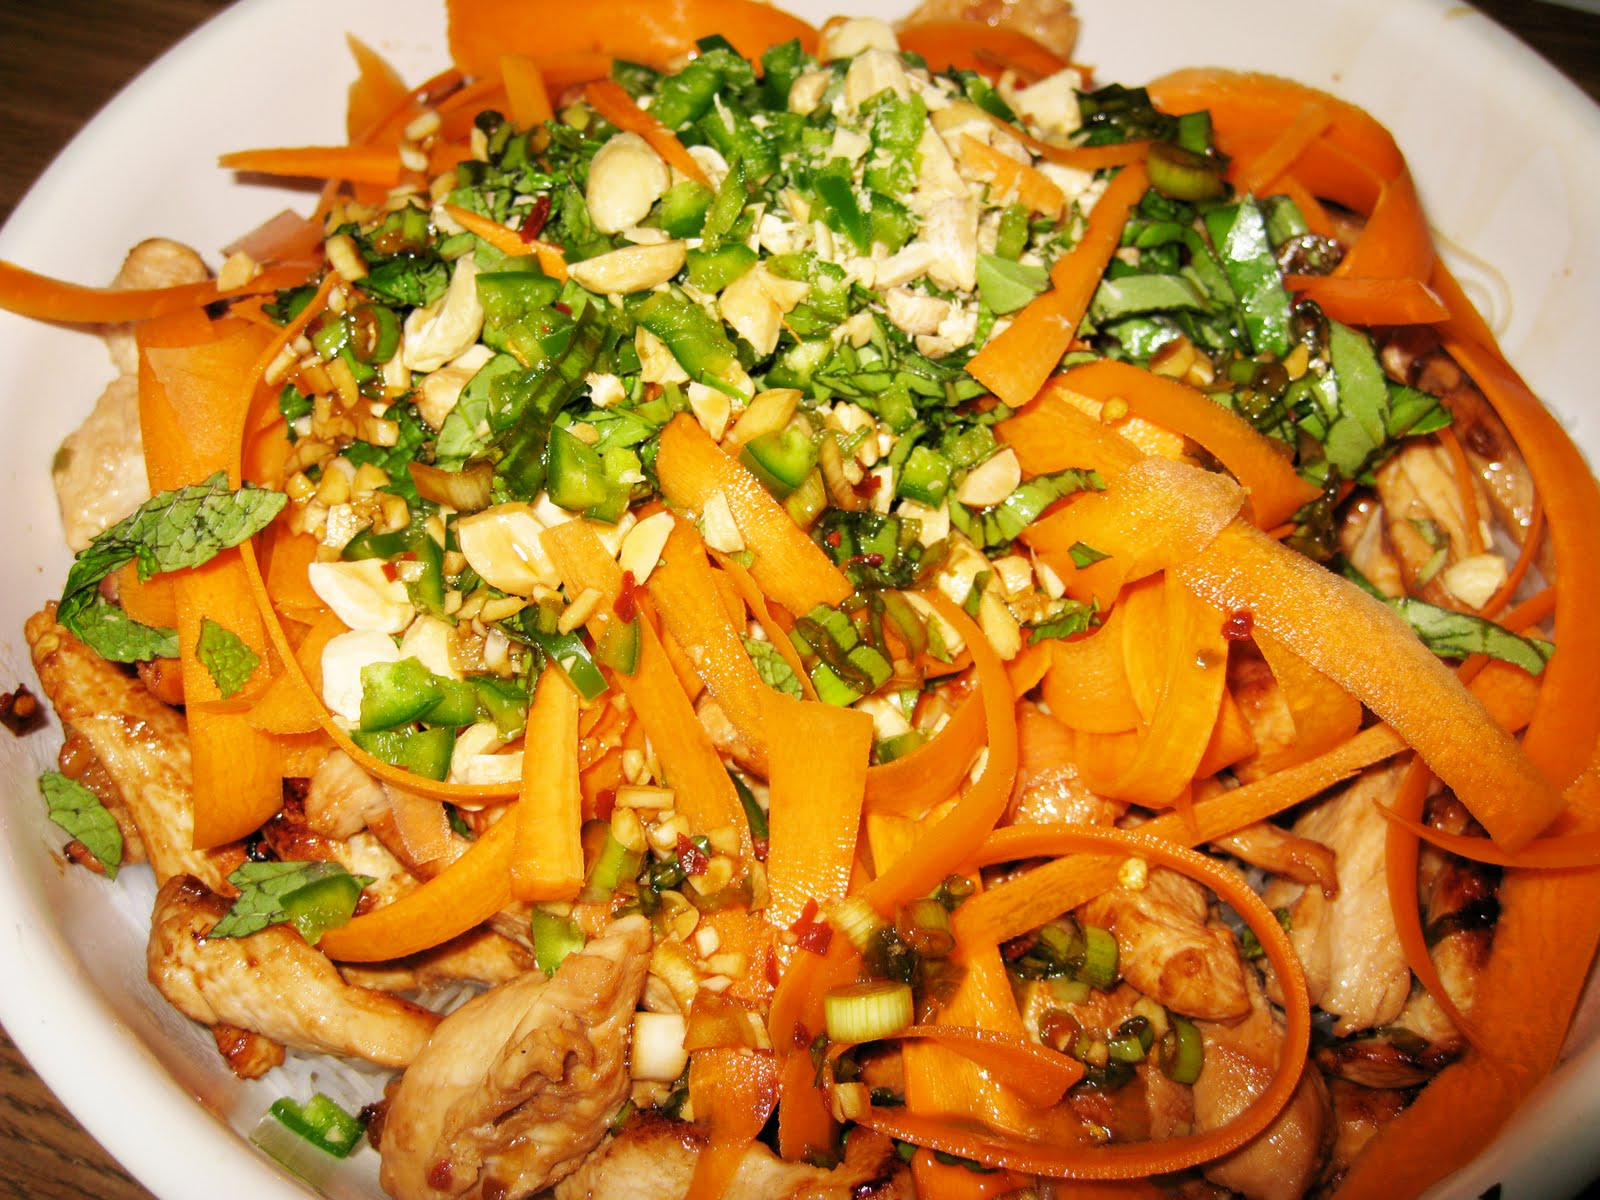 Straight No chaser: Thai Chicken and Noodle Salad